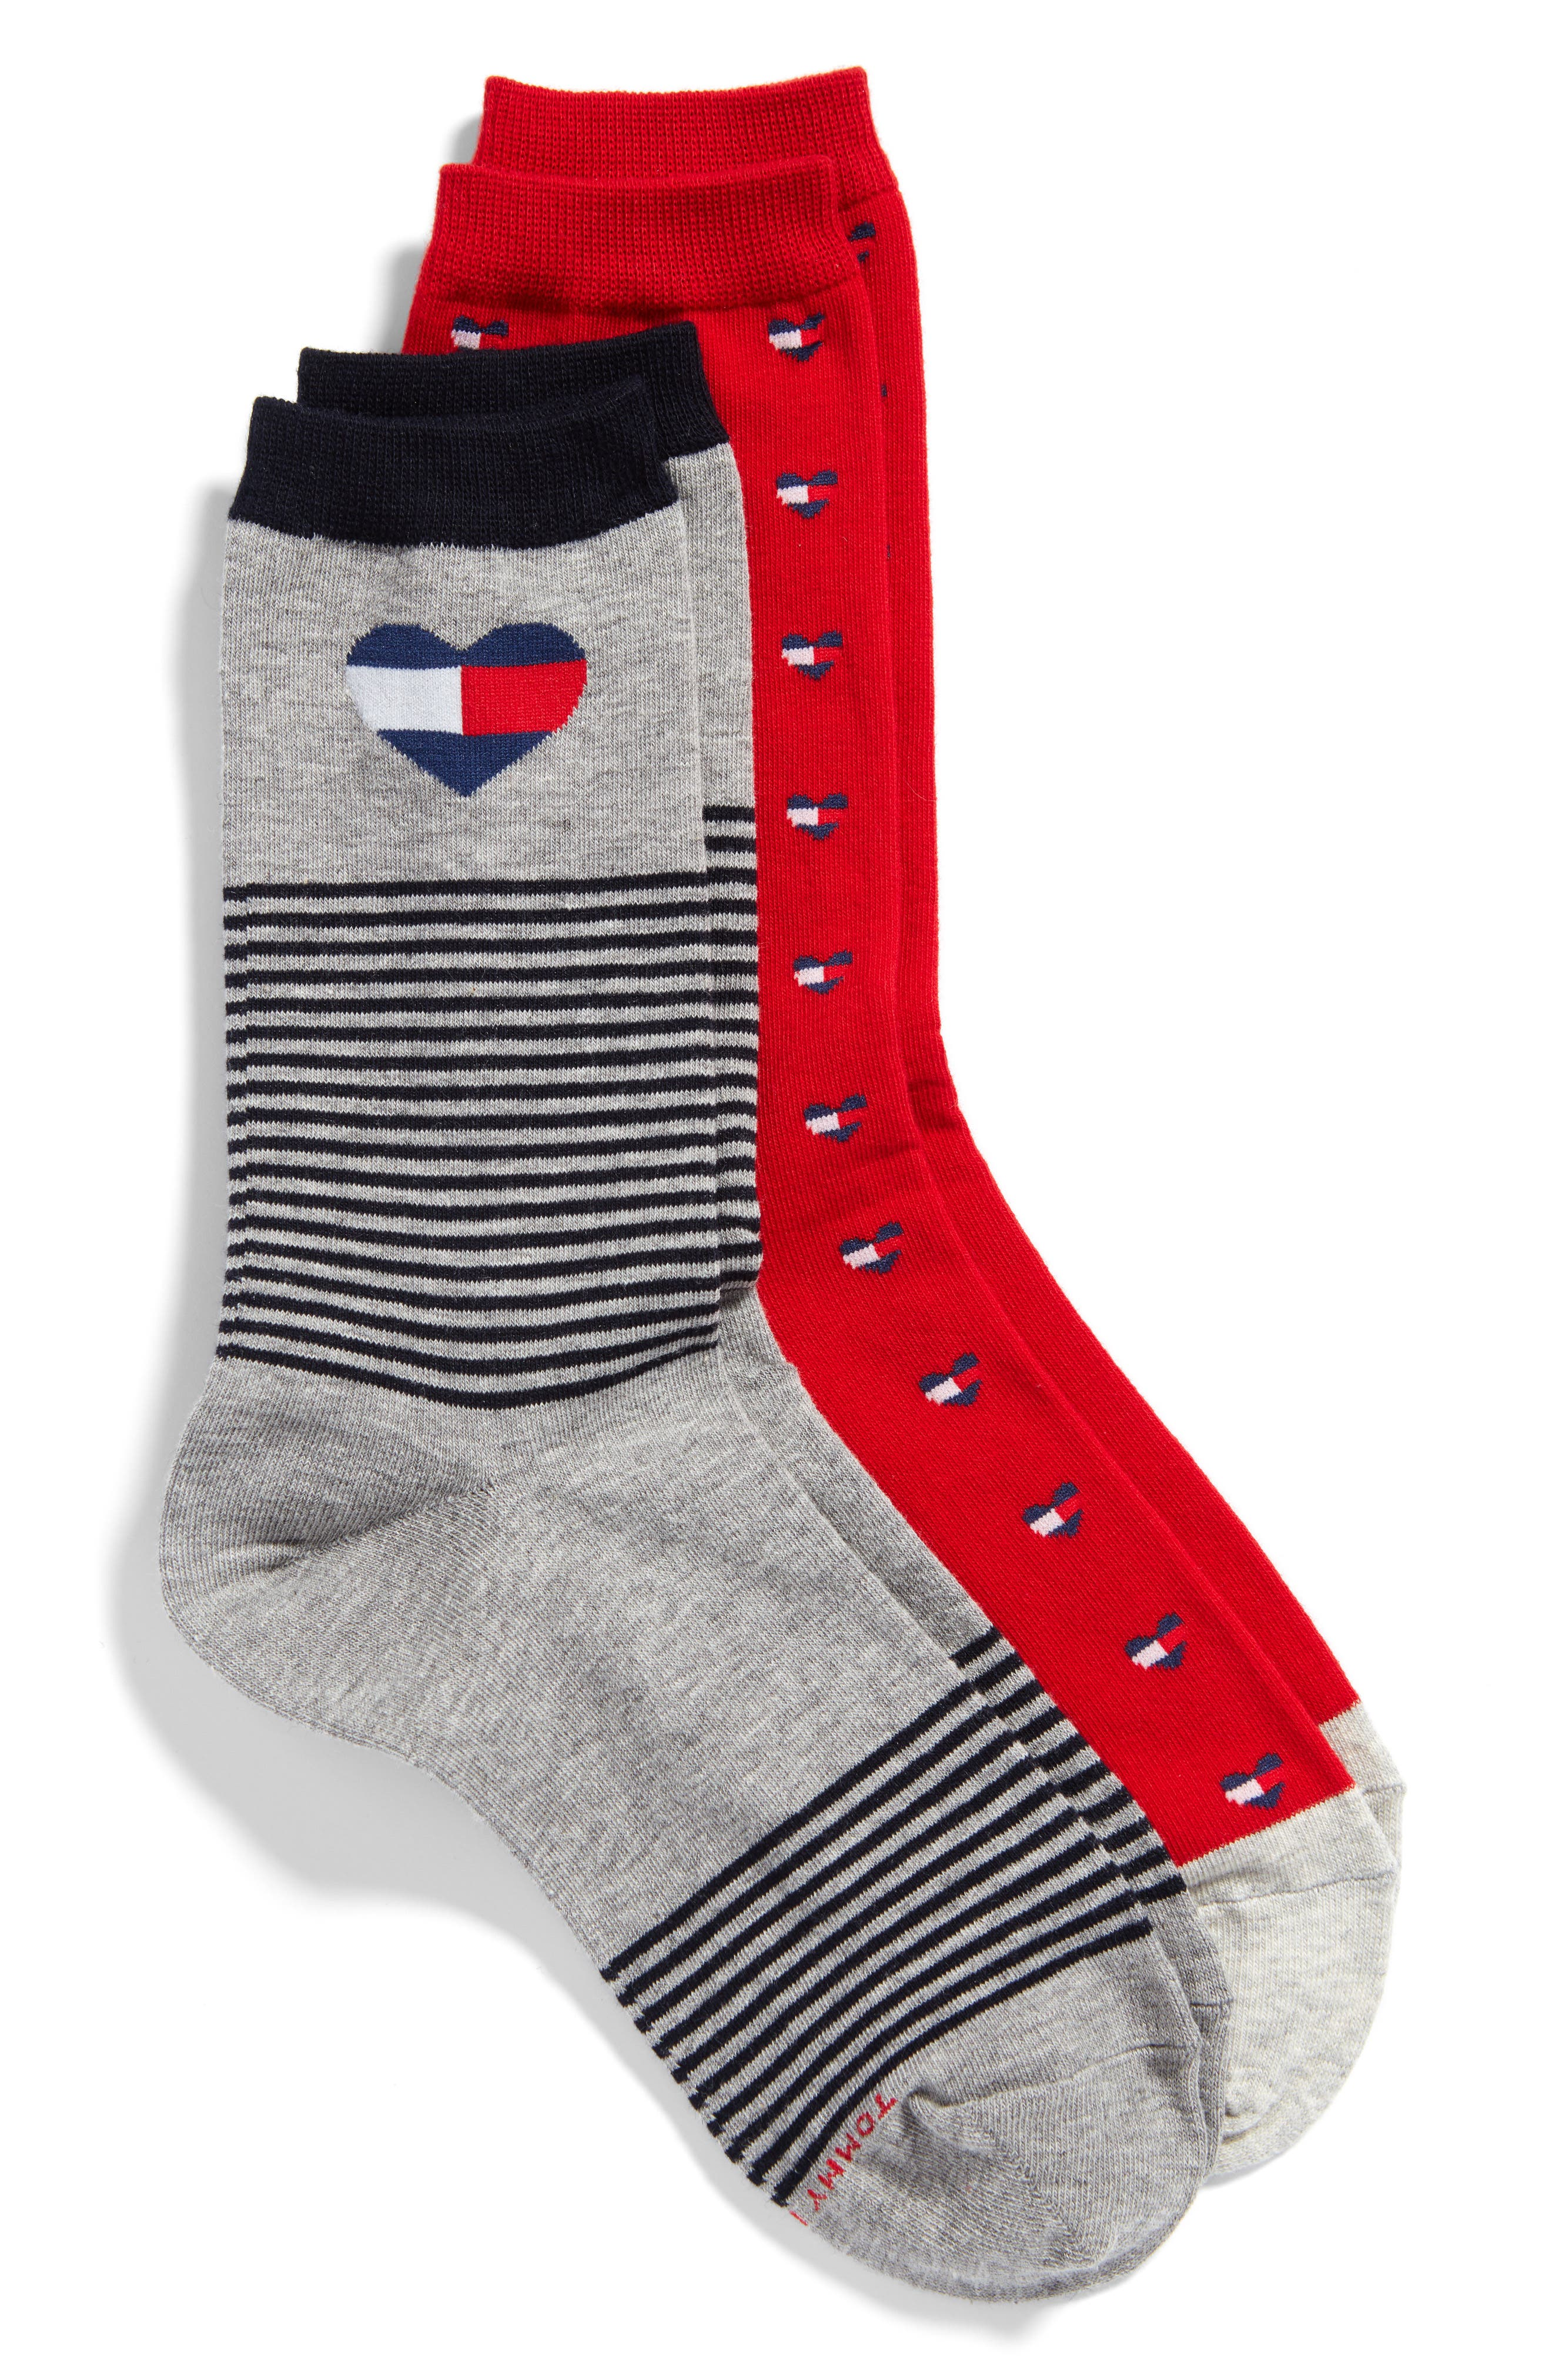 2-Pack Crew Socks,                         Main,                         color, Red/ Grey Heather